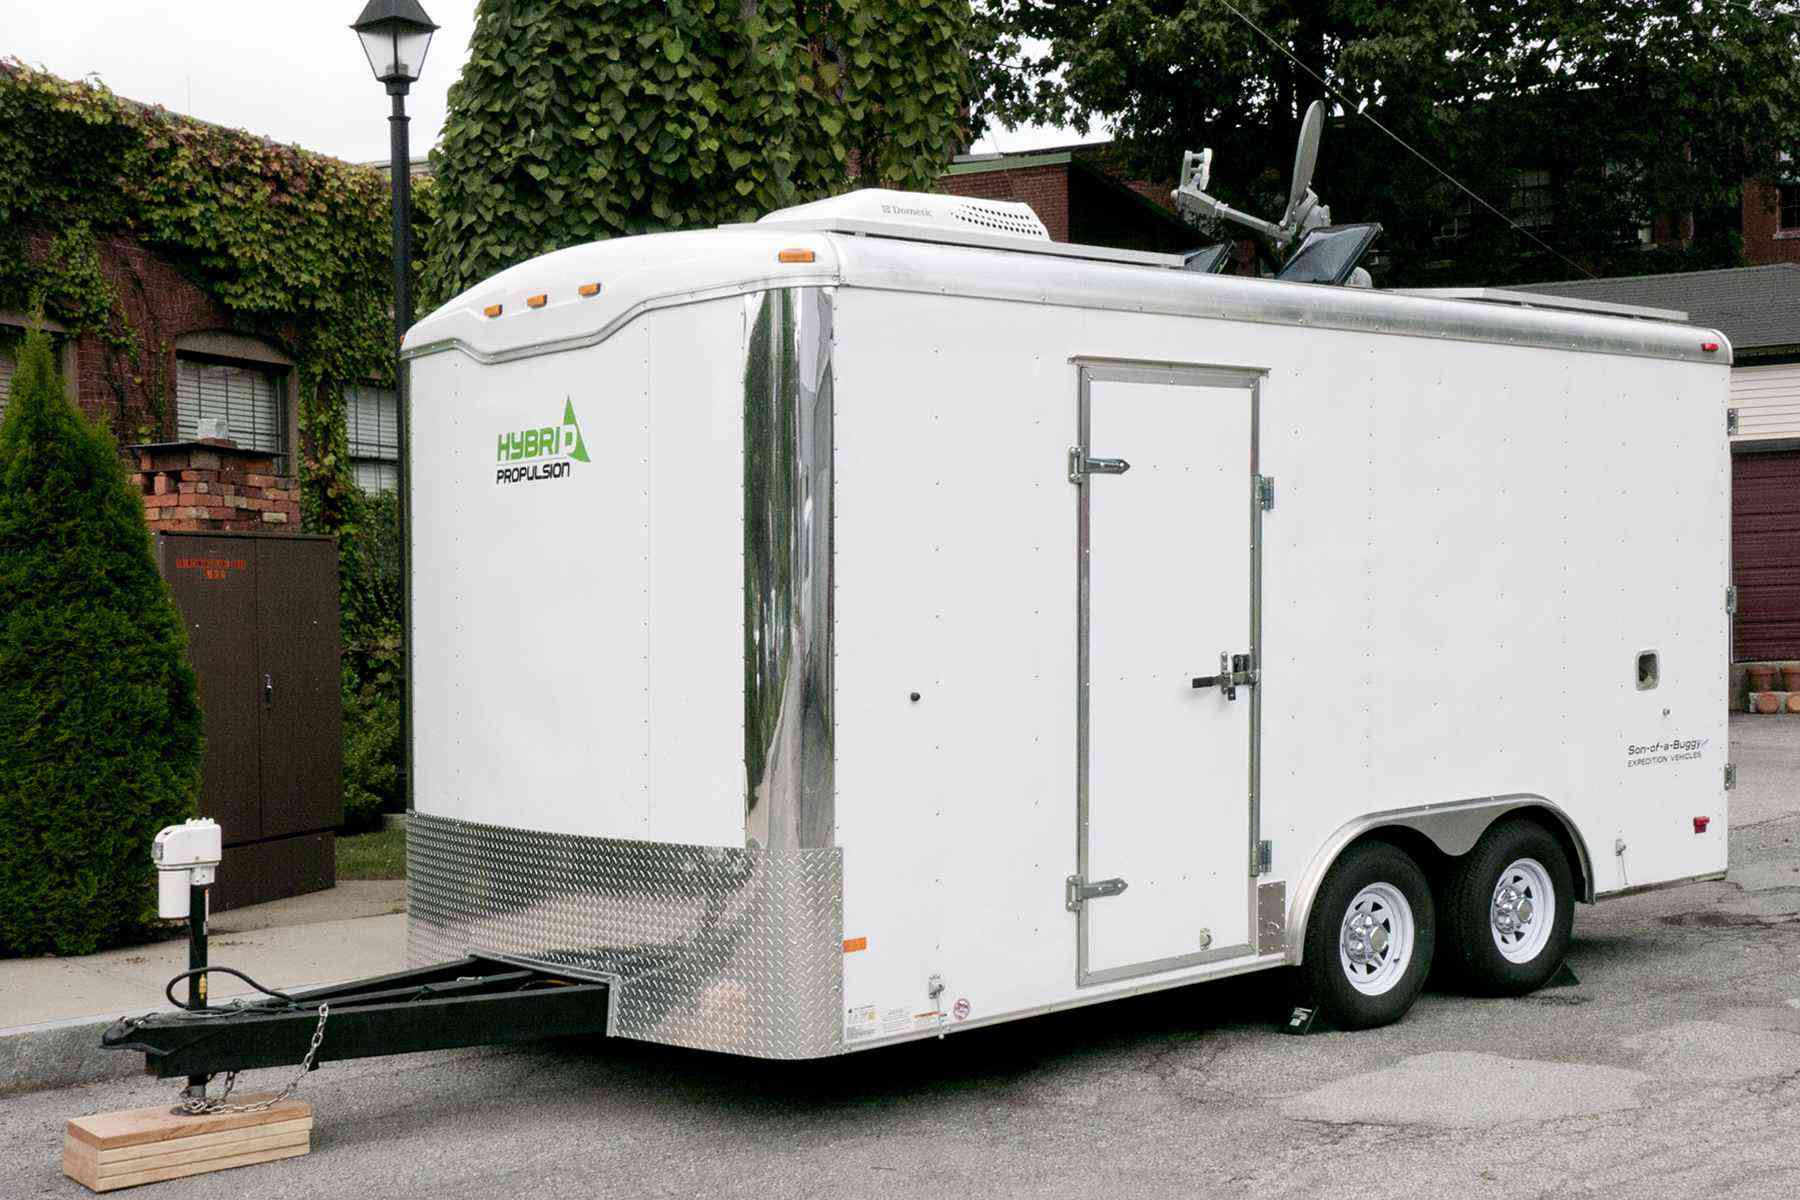 A white trailer in front of a building